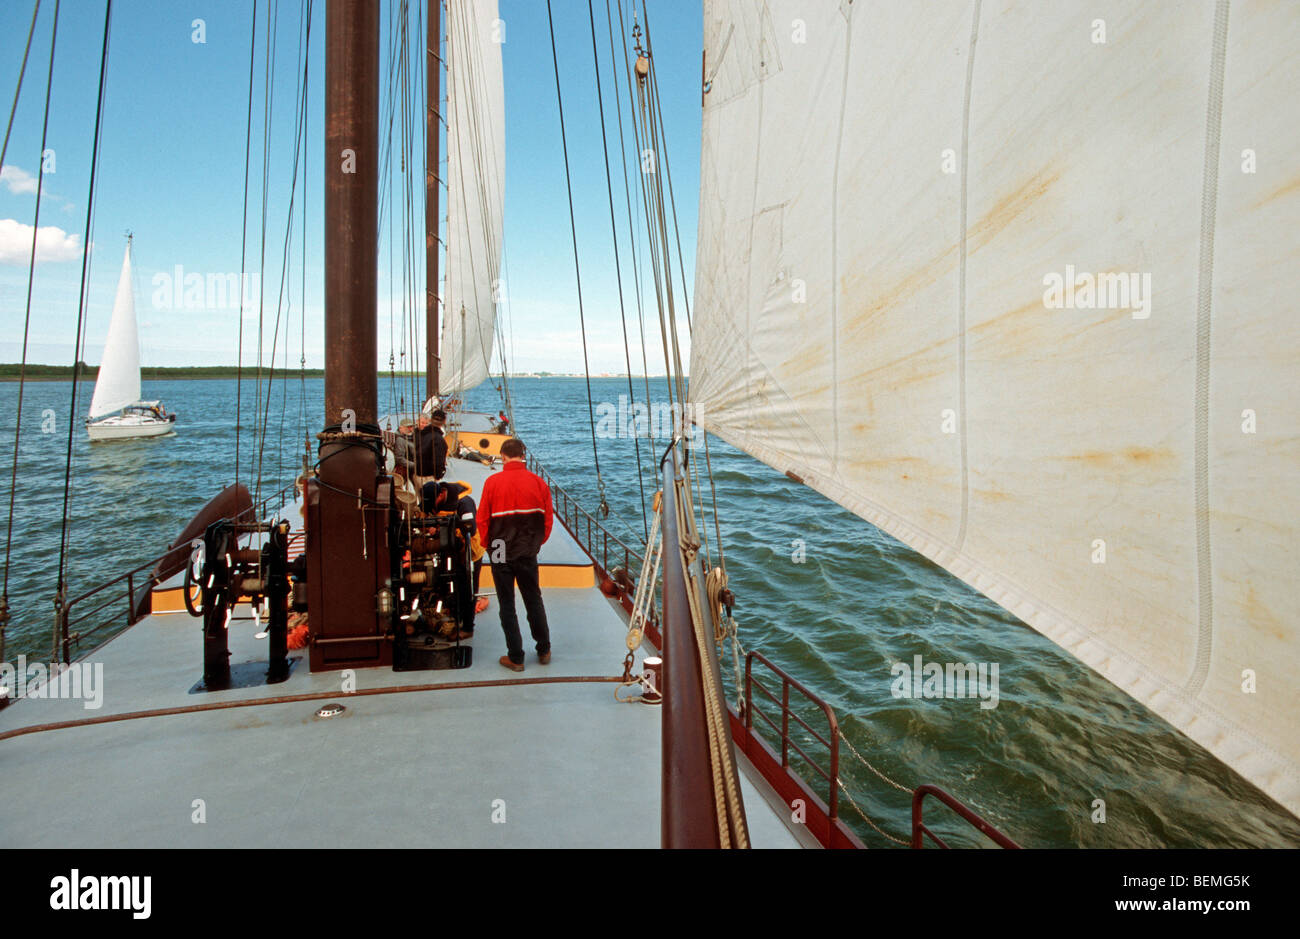 Yachtsman on clipper sailing on the Wadden Sea along the Frisian islands, the Netherlands - Stock Image